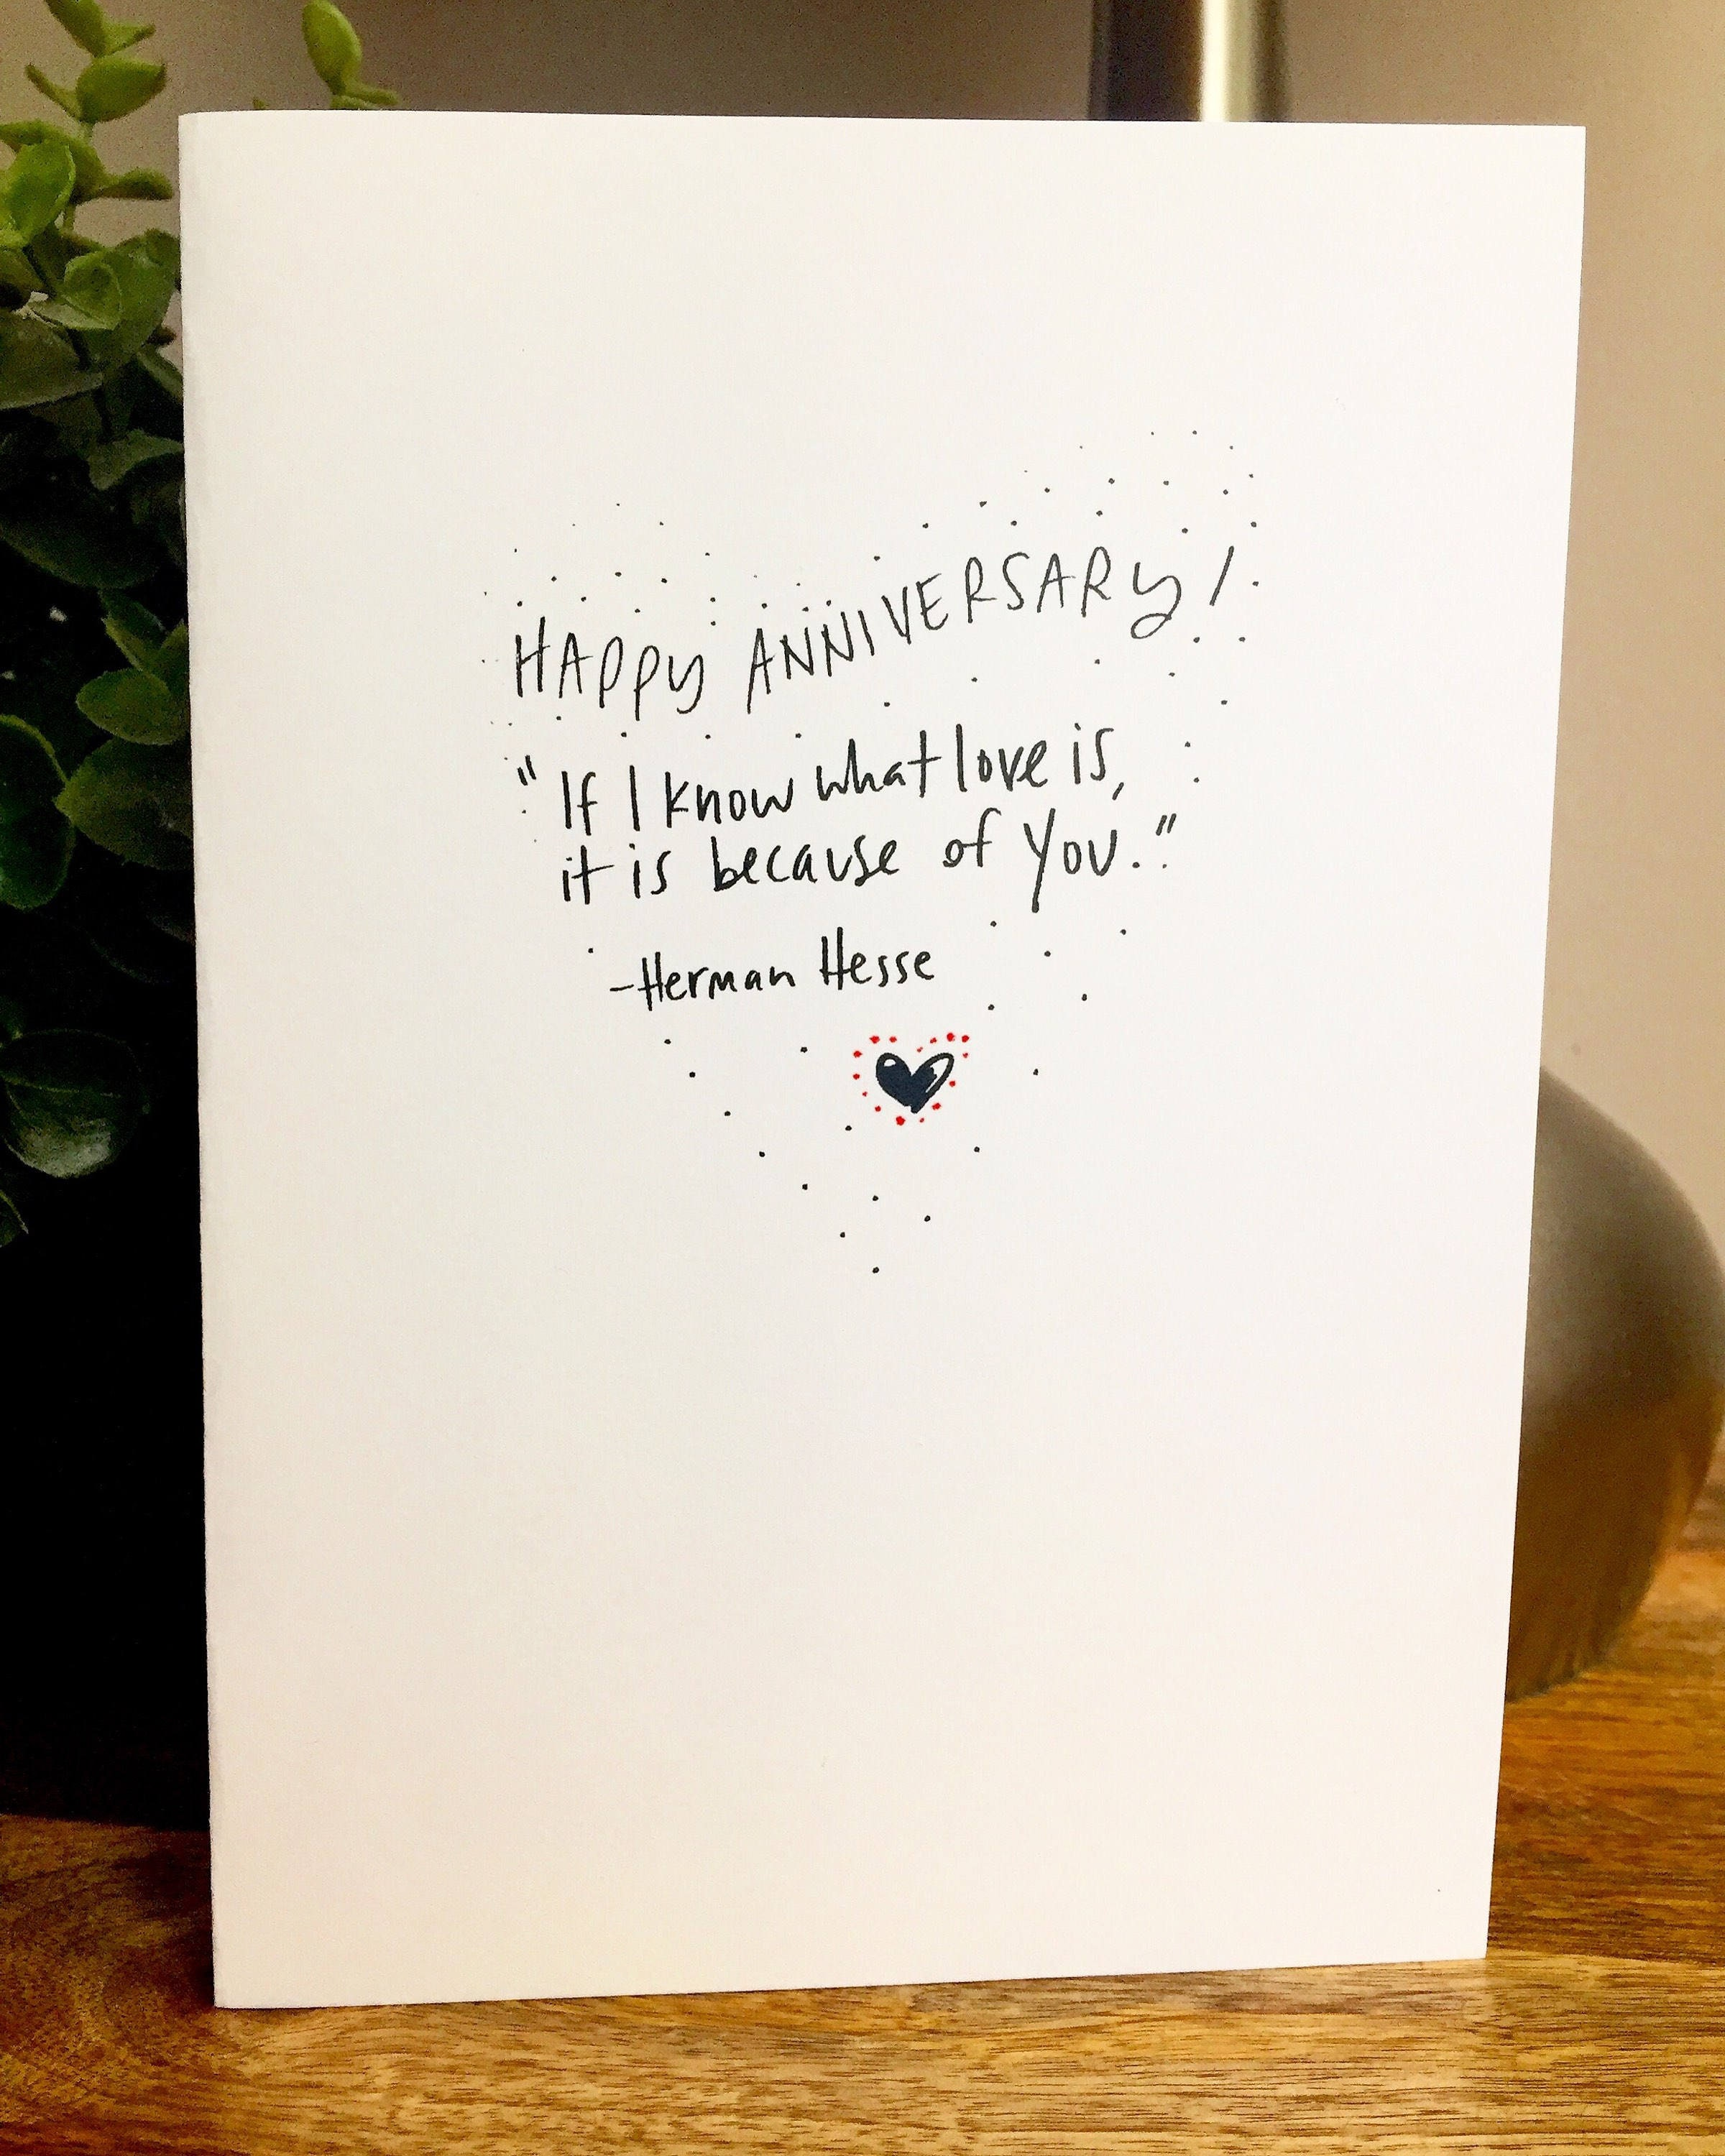 I know what love is one year anniversary card for her paper 1 m4hsunfo